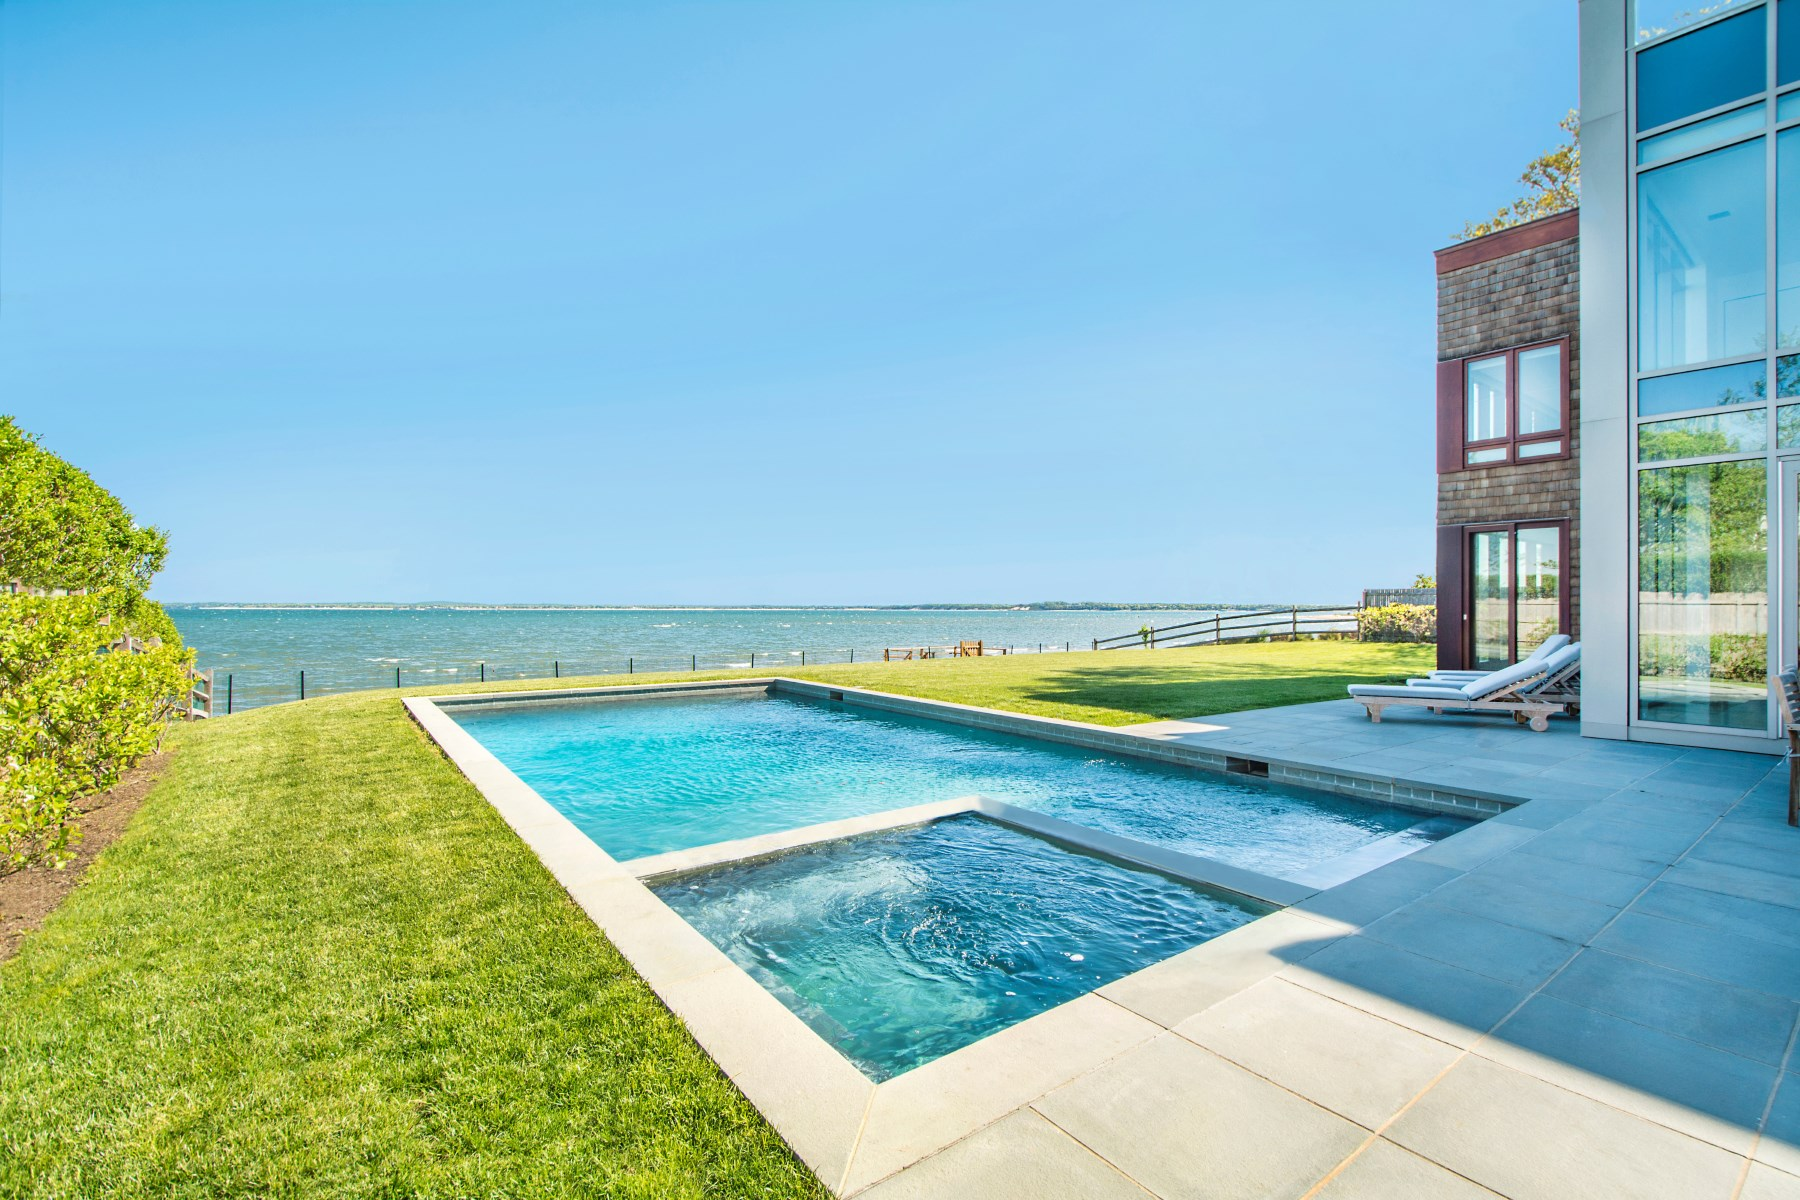 Villa per Vendita alle ore Sag Harbor Spectacular Waterfront 43 Noyack Bay Avenue Sag Harbor, New York, 11963 Stati Uniti